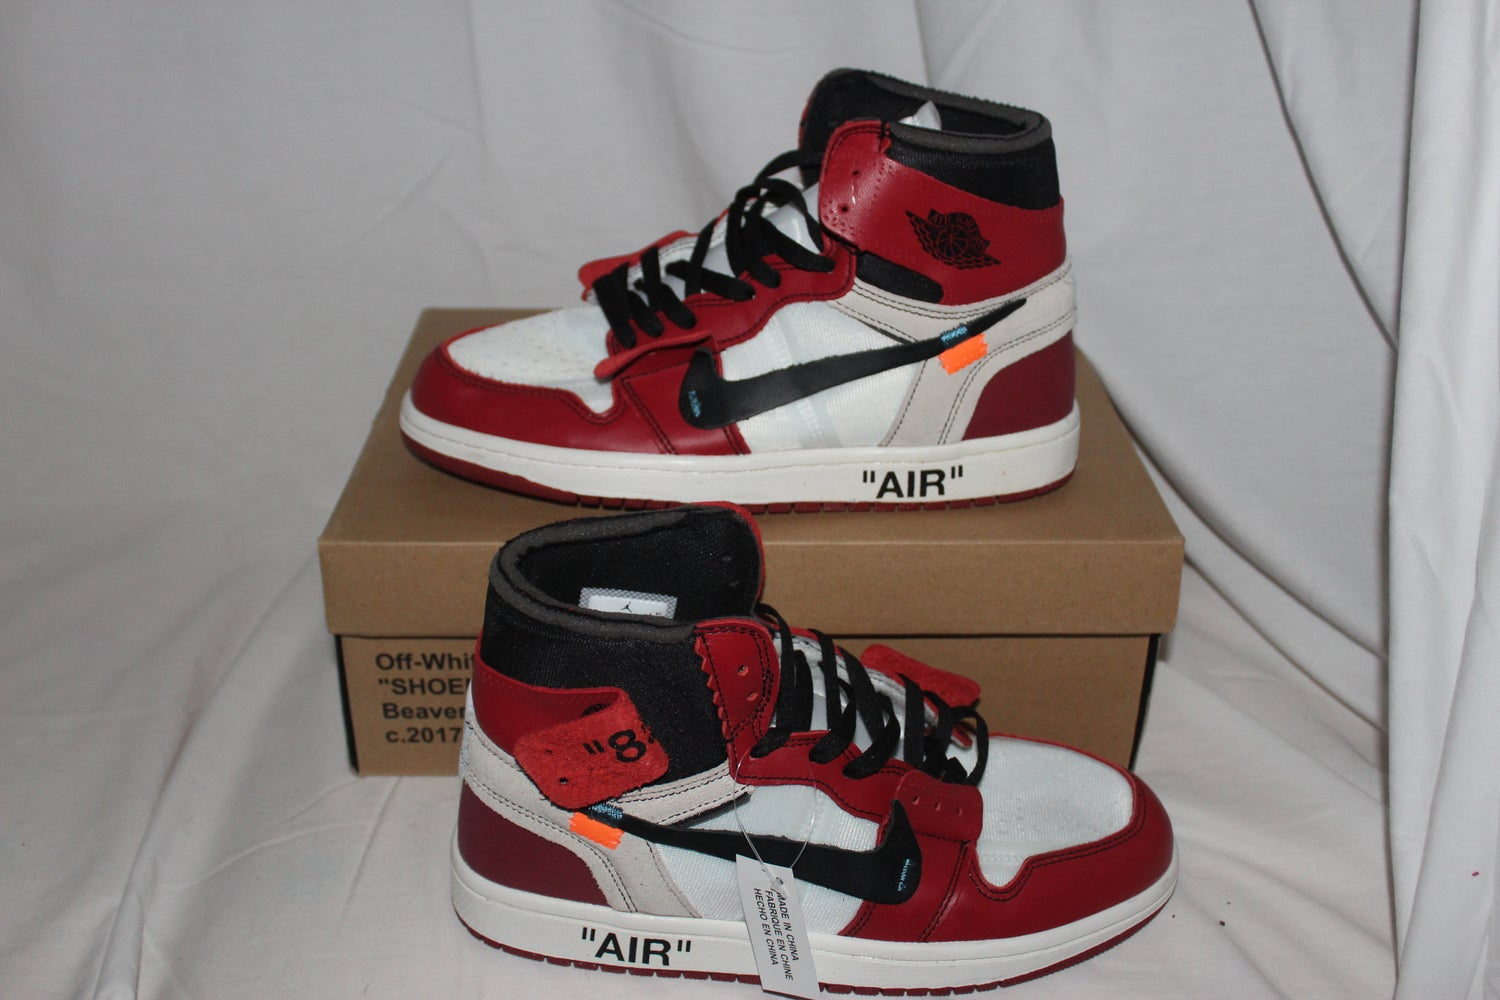 the best attitude 55dc2 94145 OFF-WHITE x Air Jordan 1 Retro High OG. Image of OFF-WHITE x Air Jordan 1  Retro High OG